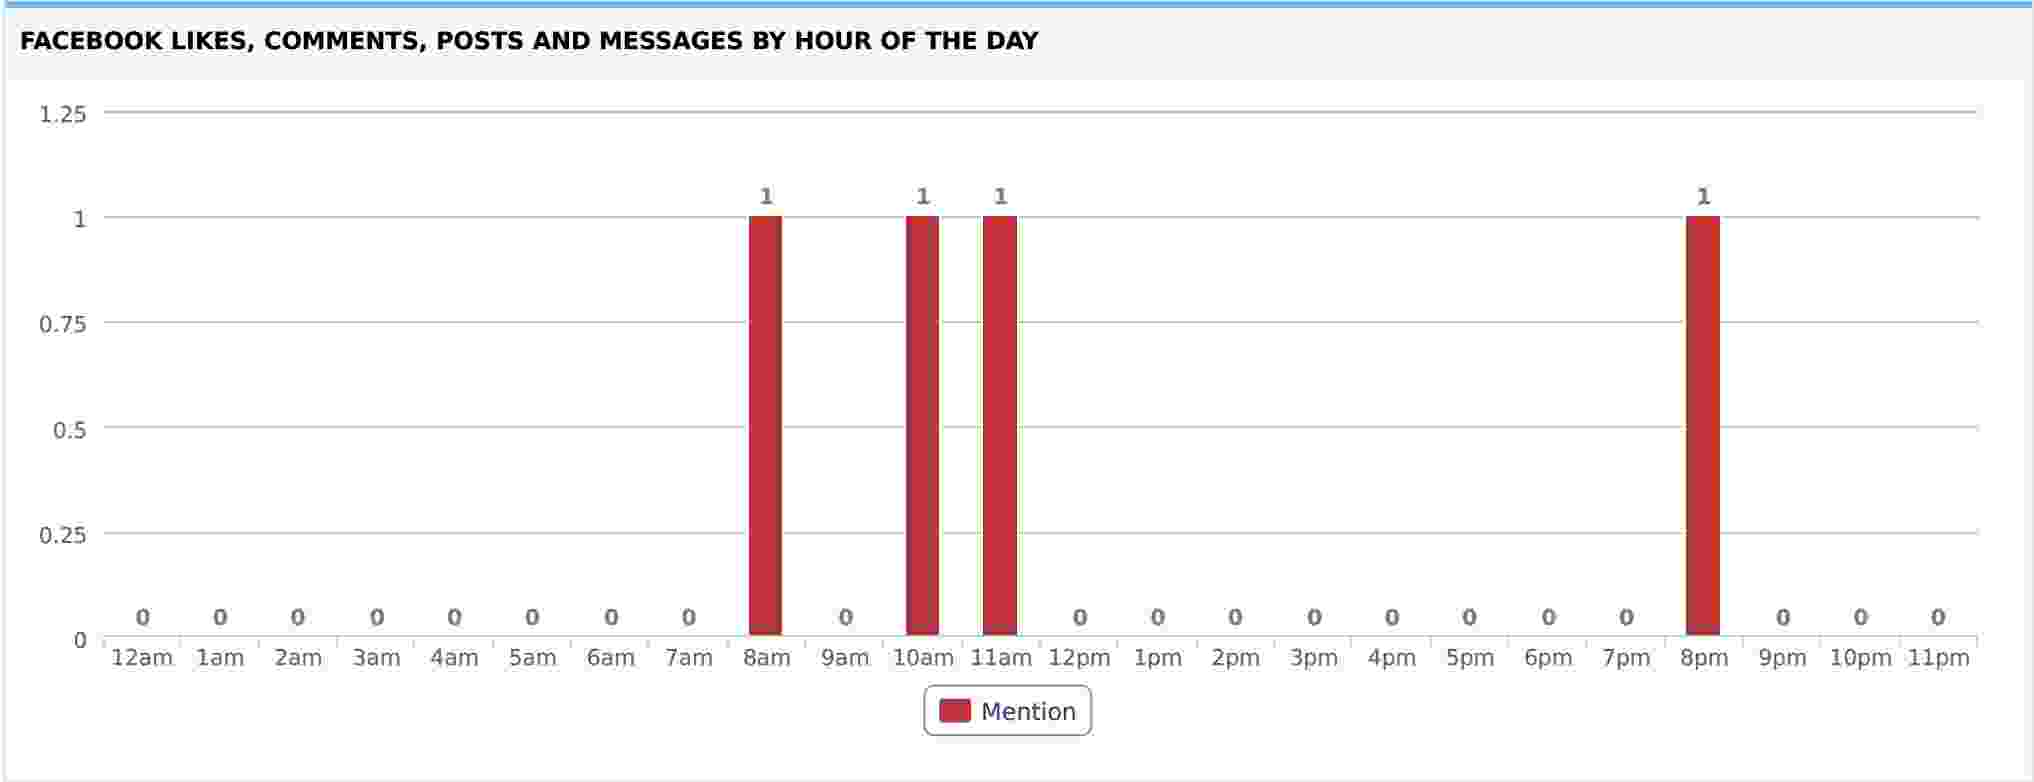 Facebook Likes Comments Posts and Messages by Hour of the Day